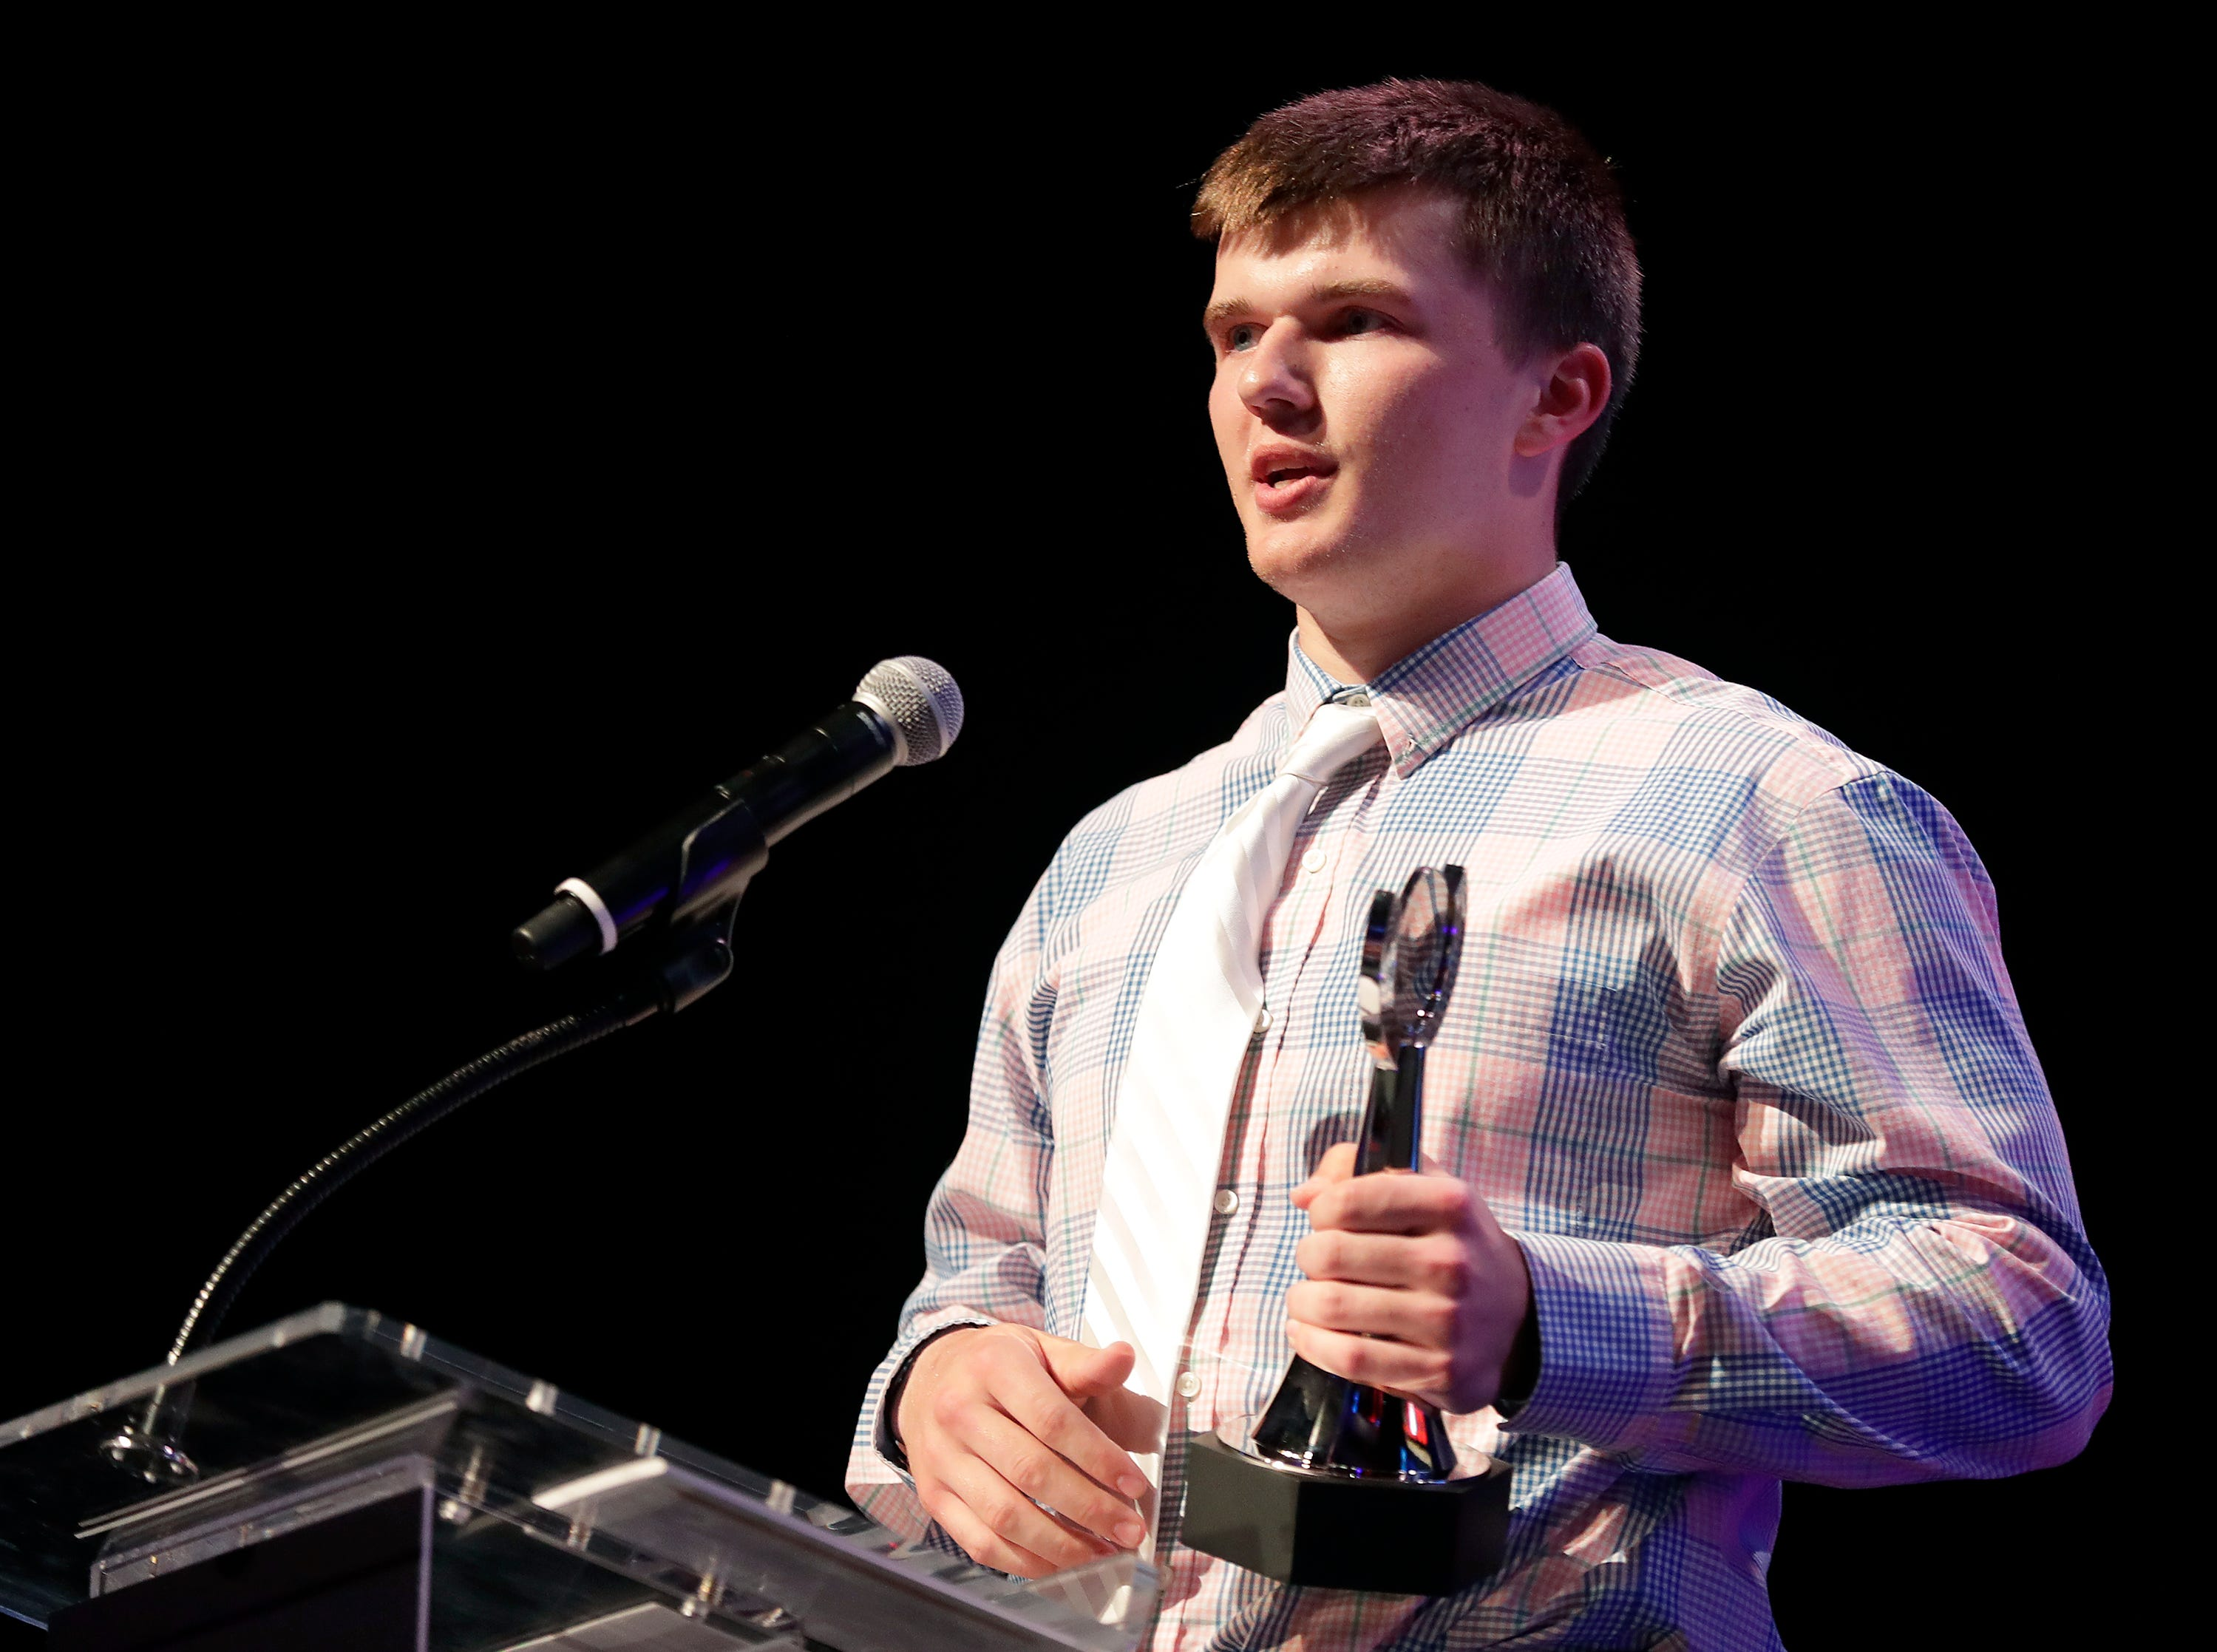 Boys Athlete of the Year, Southern Door's Derek Lecaptain during the Wisconsin High School Sports Awards show at the Fox Cities Performing Arts Center on Wednesday, May 8, 2019, in Appleton, Wis. Olympic champion Michael Phelps was the guest speaker. The annual event was presented by USA TODAY NETWORK-Wisconsin.  Wm. Glasheen/USA TODAY NETWORK-Wisconsin.